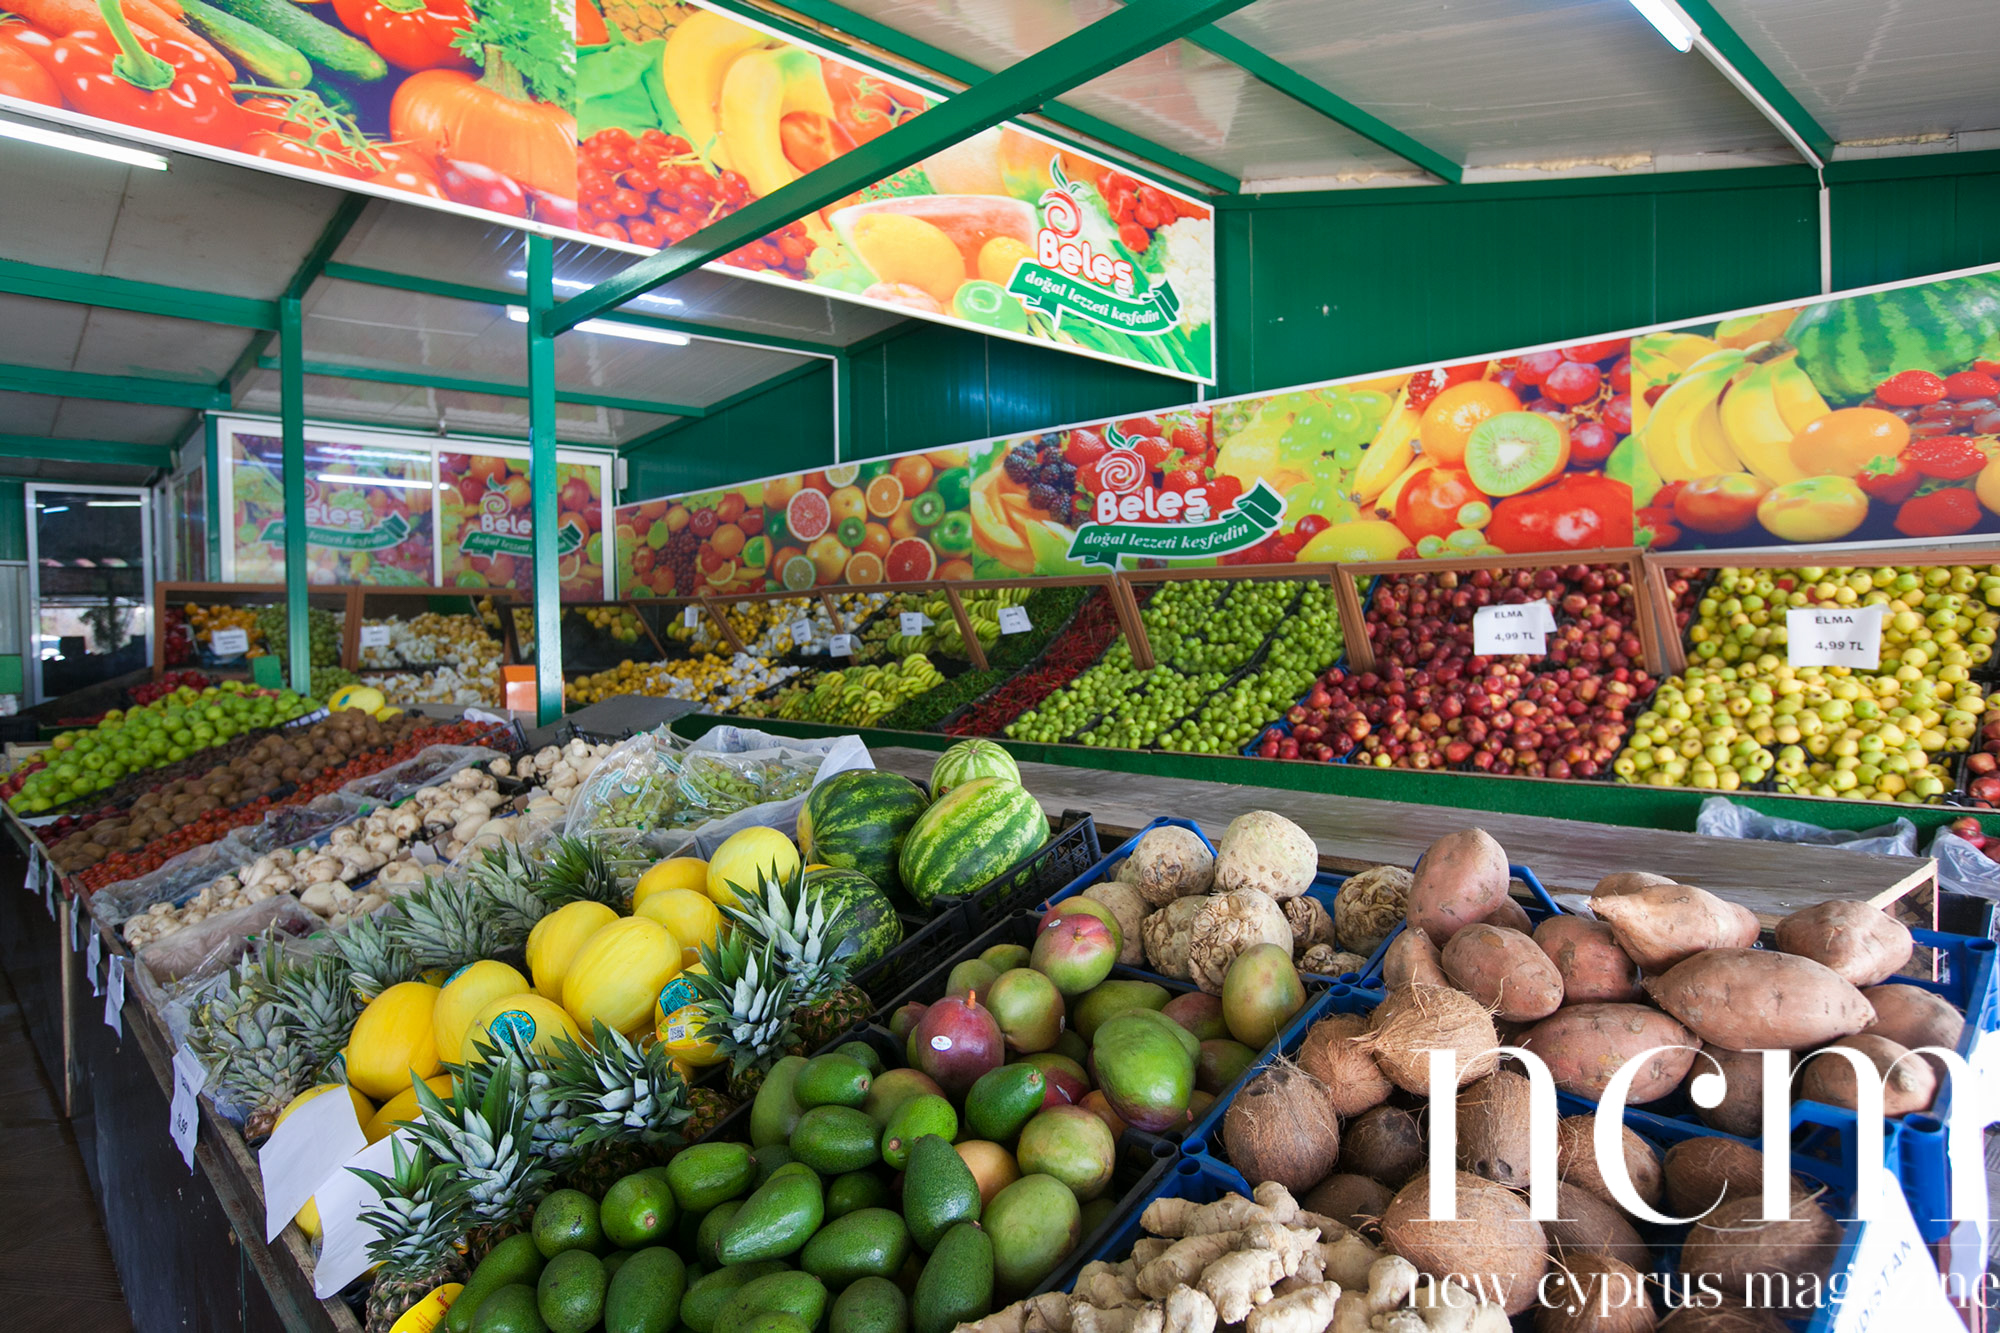 The store of Fruit veg Ya Beles in North Cyprus